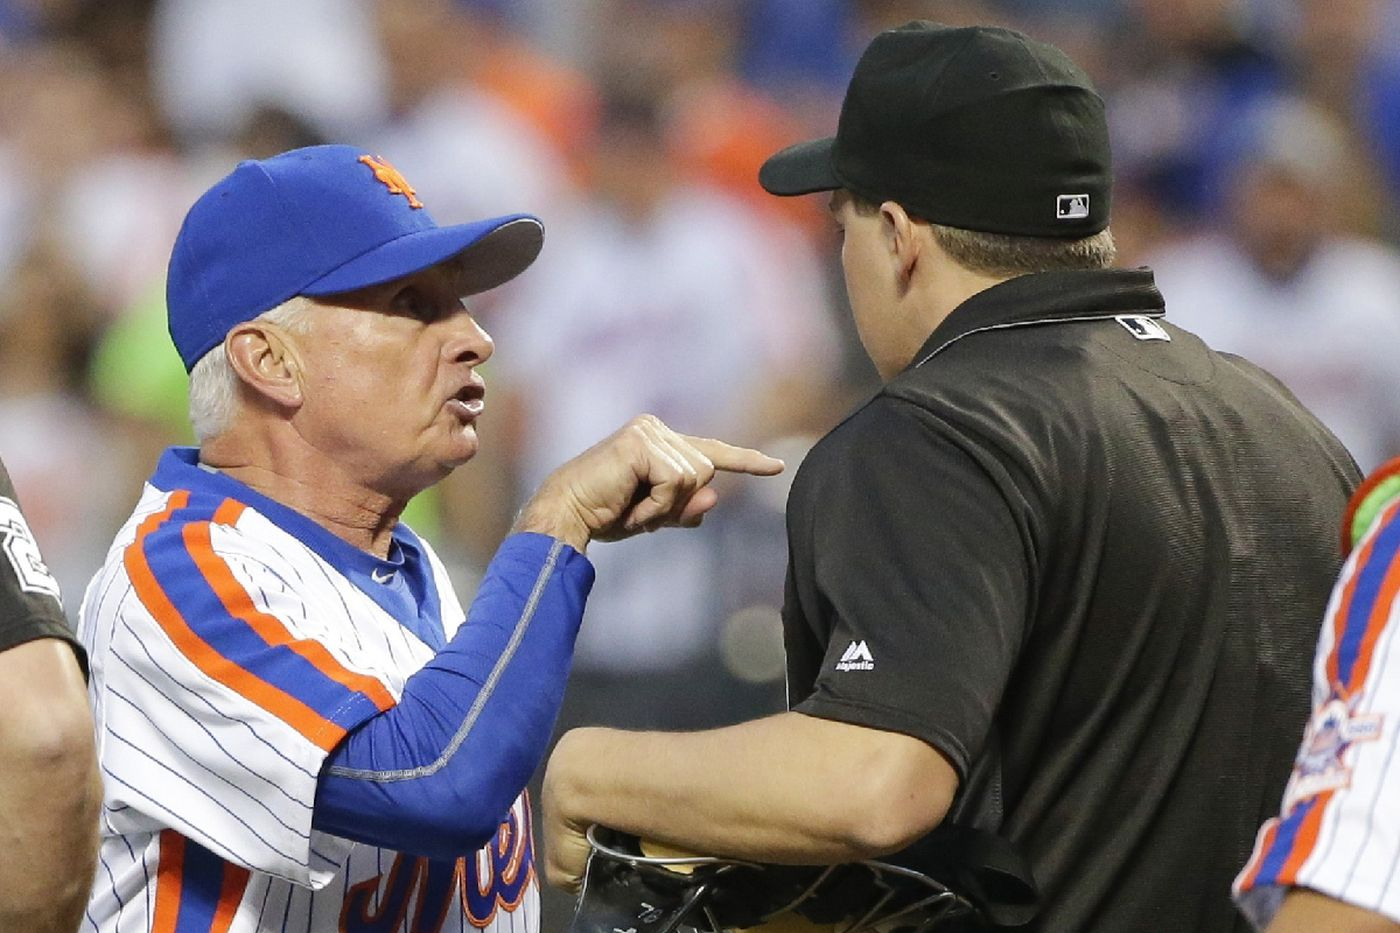 MLB trying to scrub viral video with Chase Utley and a profane Terry Collins from the internet